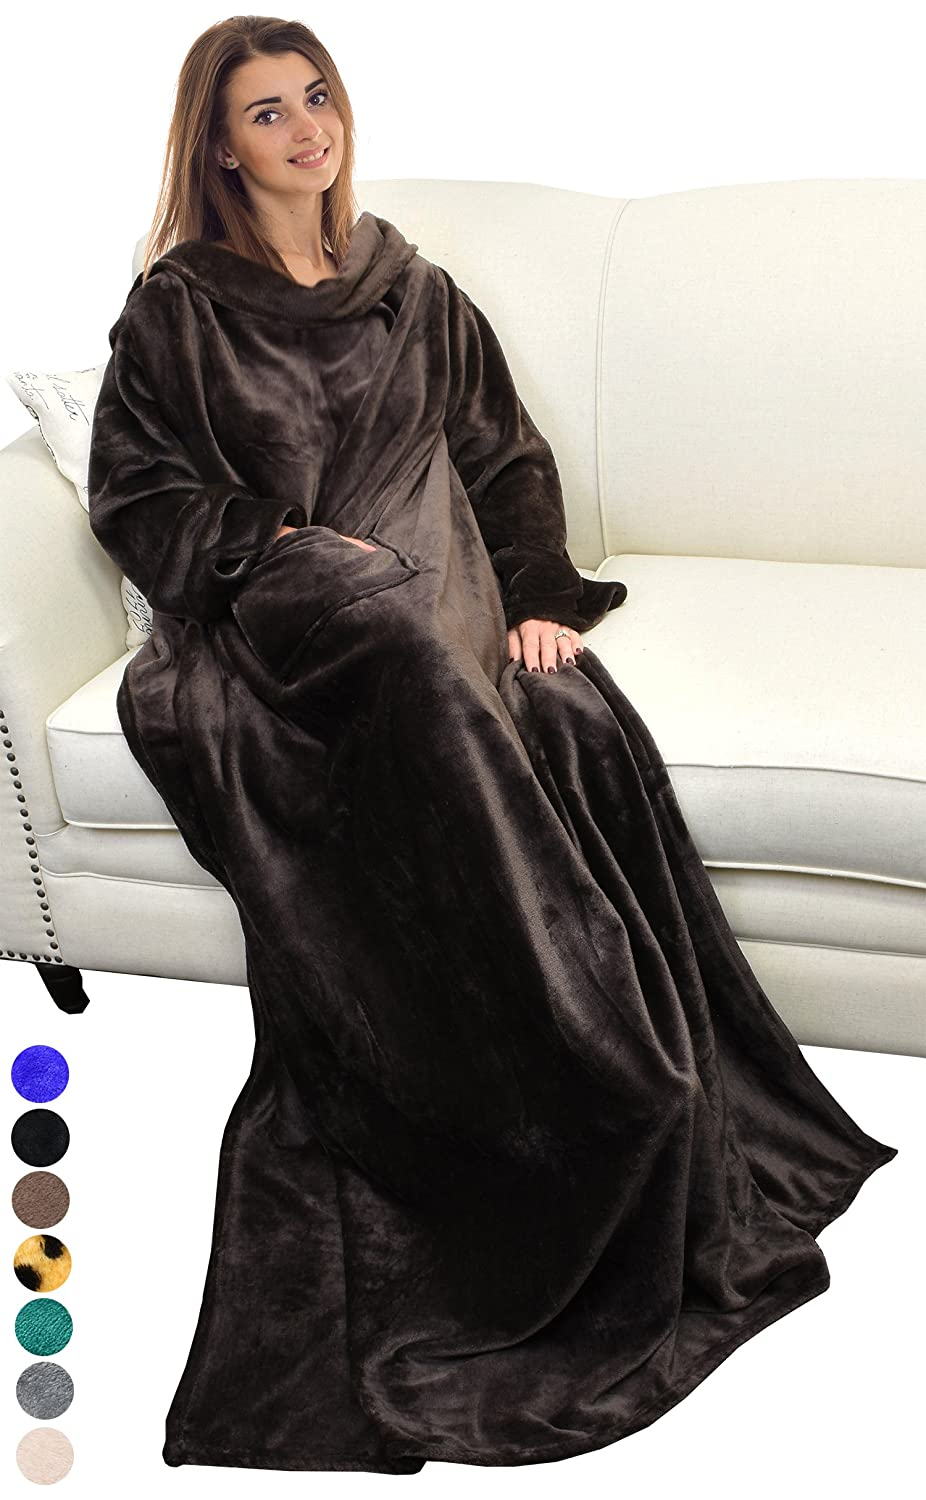 """Catalonia Wearable Blanket with Sleeves and Pocket, Comfy Soft Fleece Mink Micro Plush Wrap Throws Blanket Robe for Women and Men 73"""" x 51"""""""